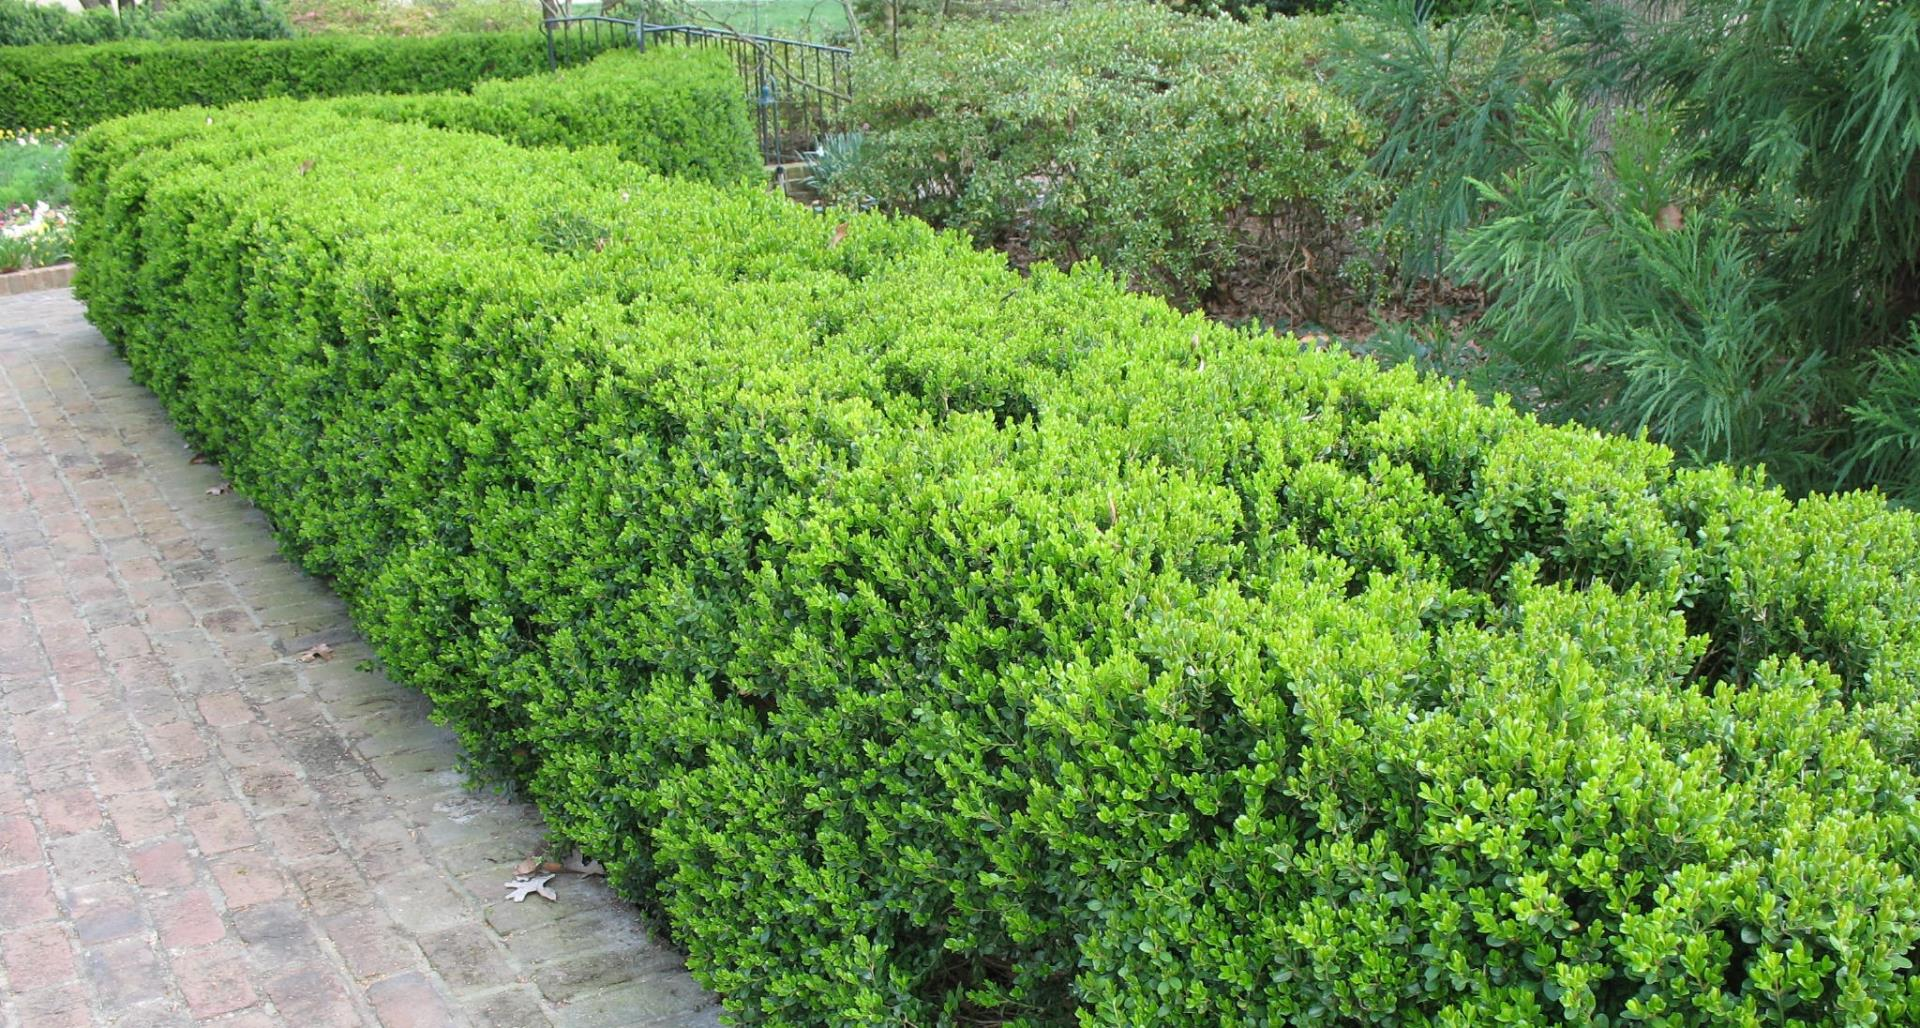 #TeachingTuesday: Korean Boxwood